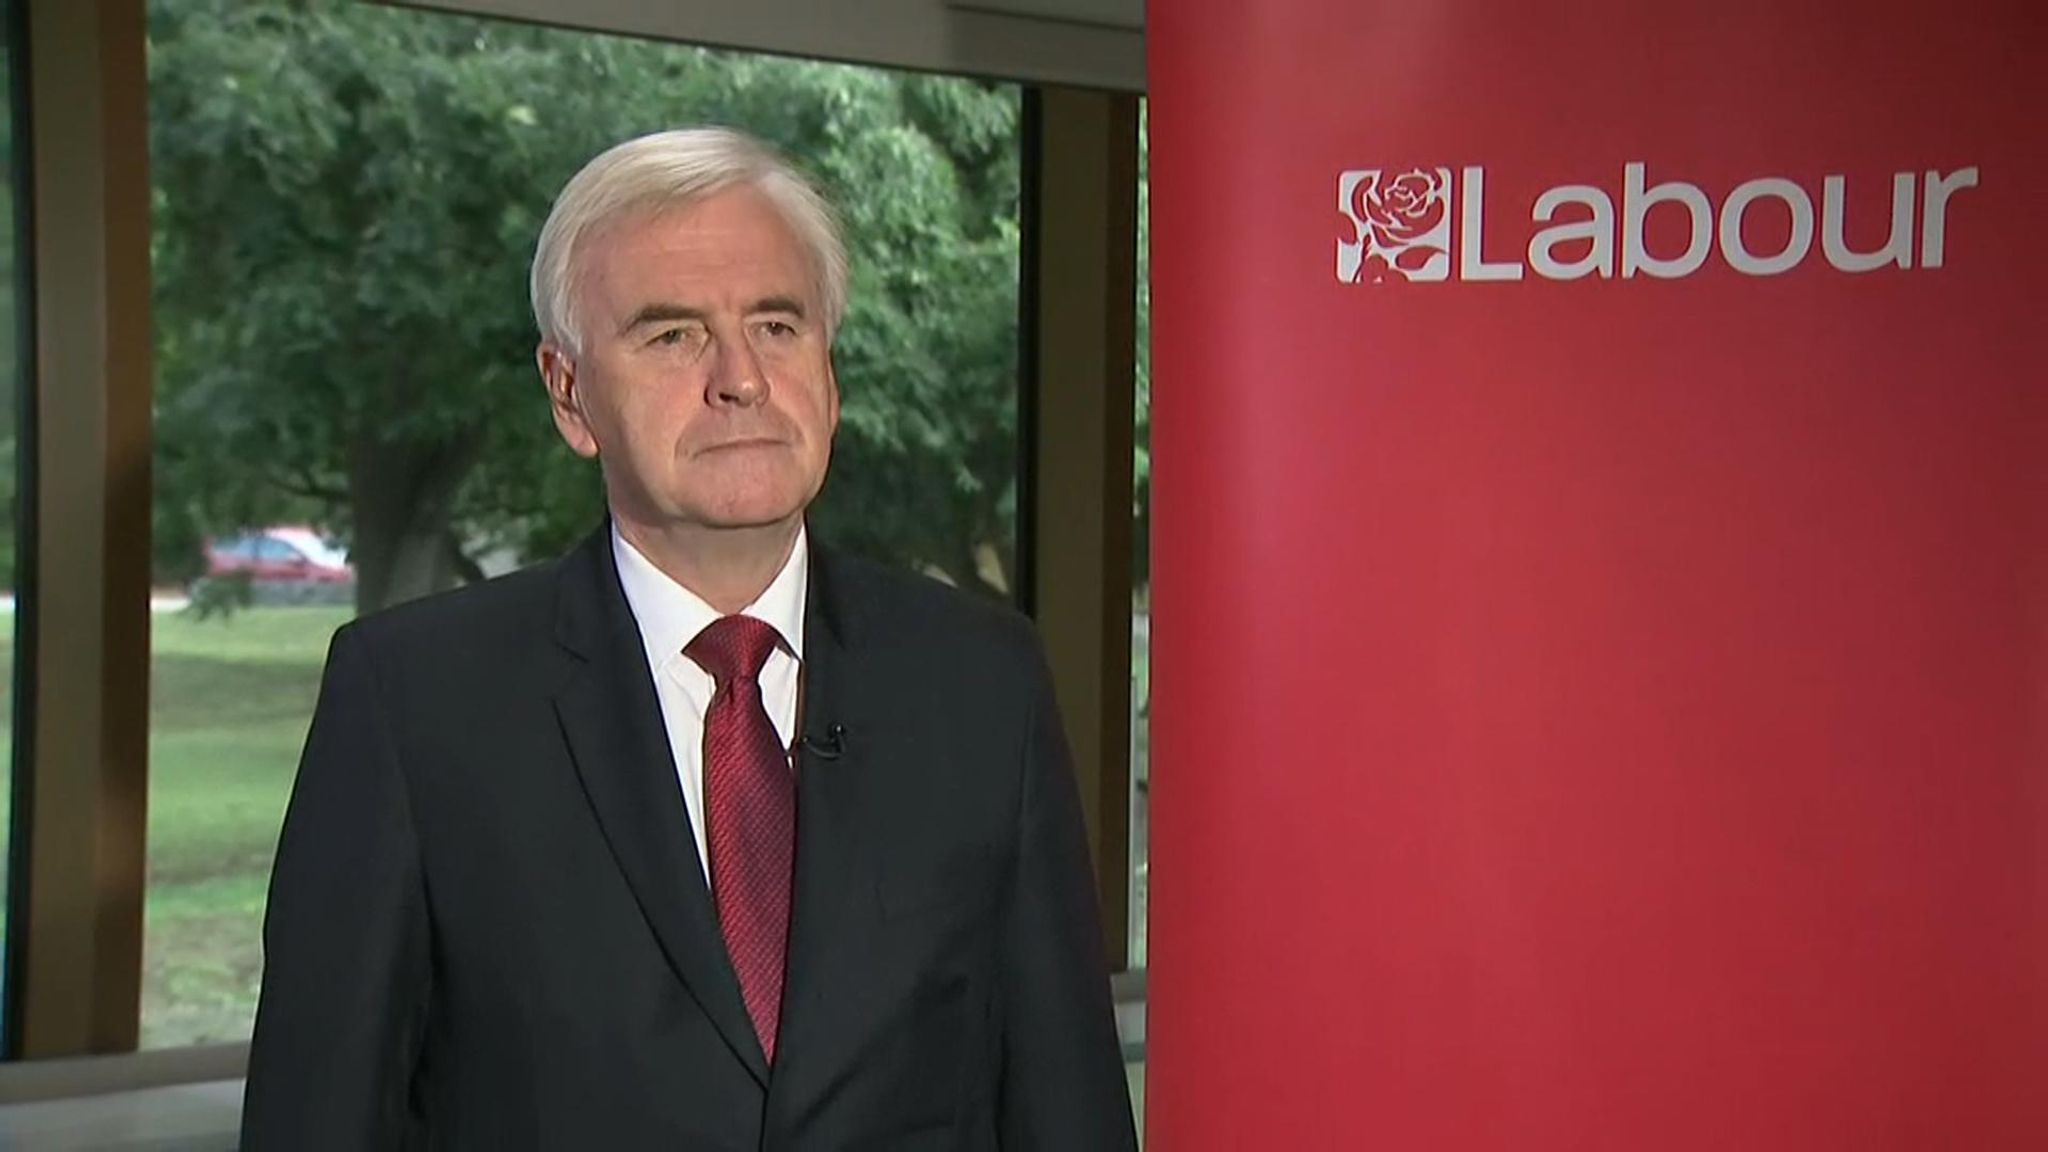 General election: Labour promises free broadband if they win election